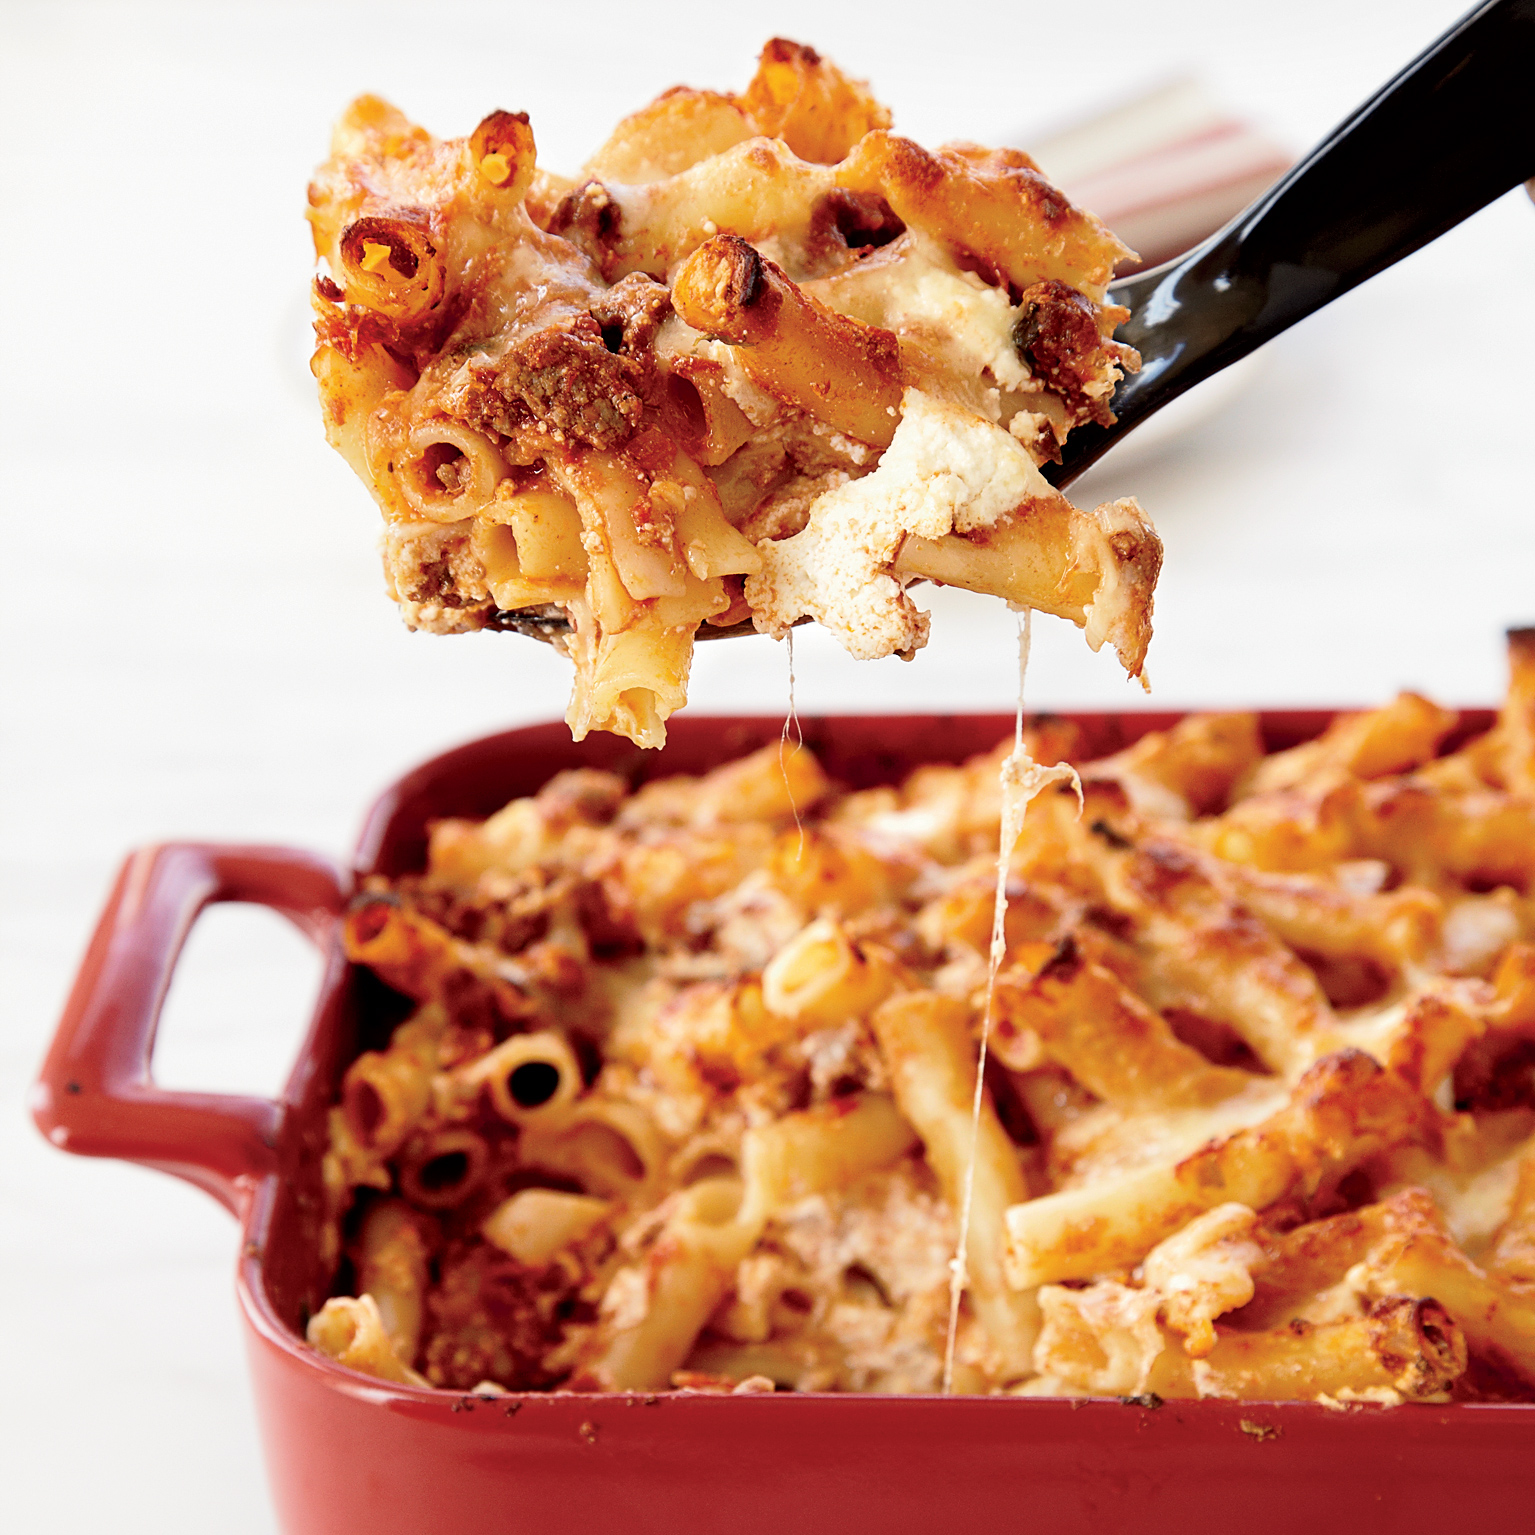 images-sys-201202-r-speedy-baked-ziti.jpg